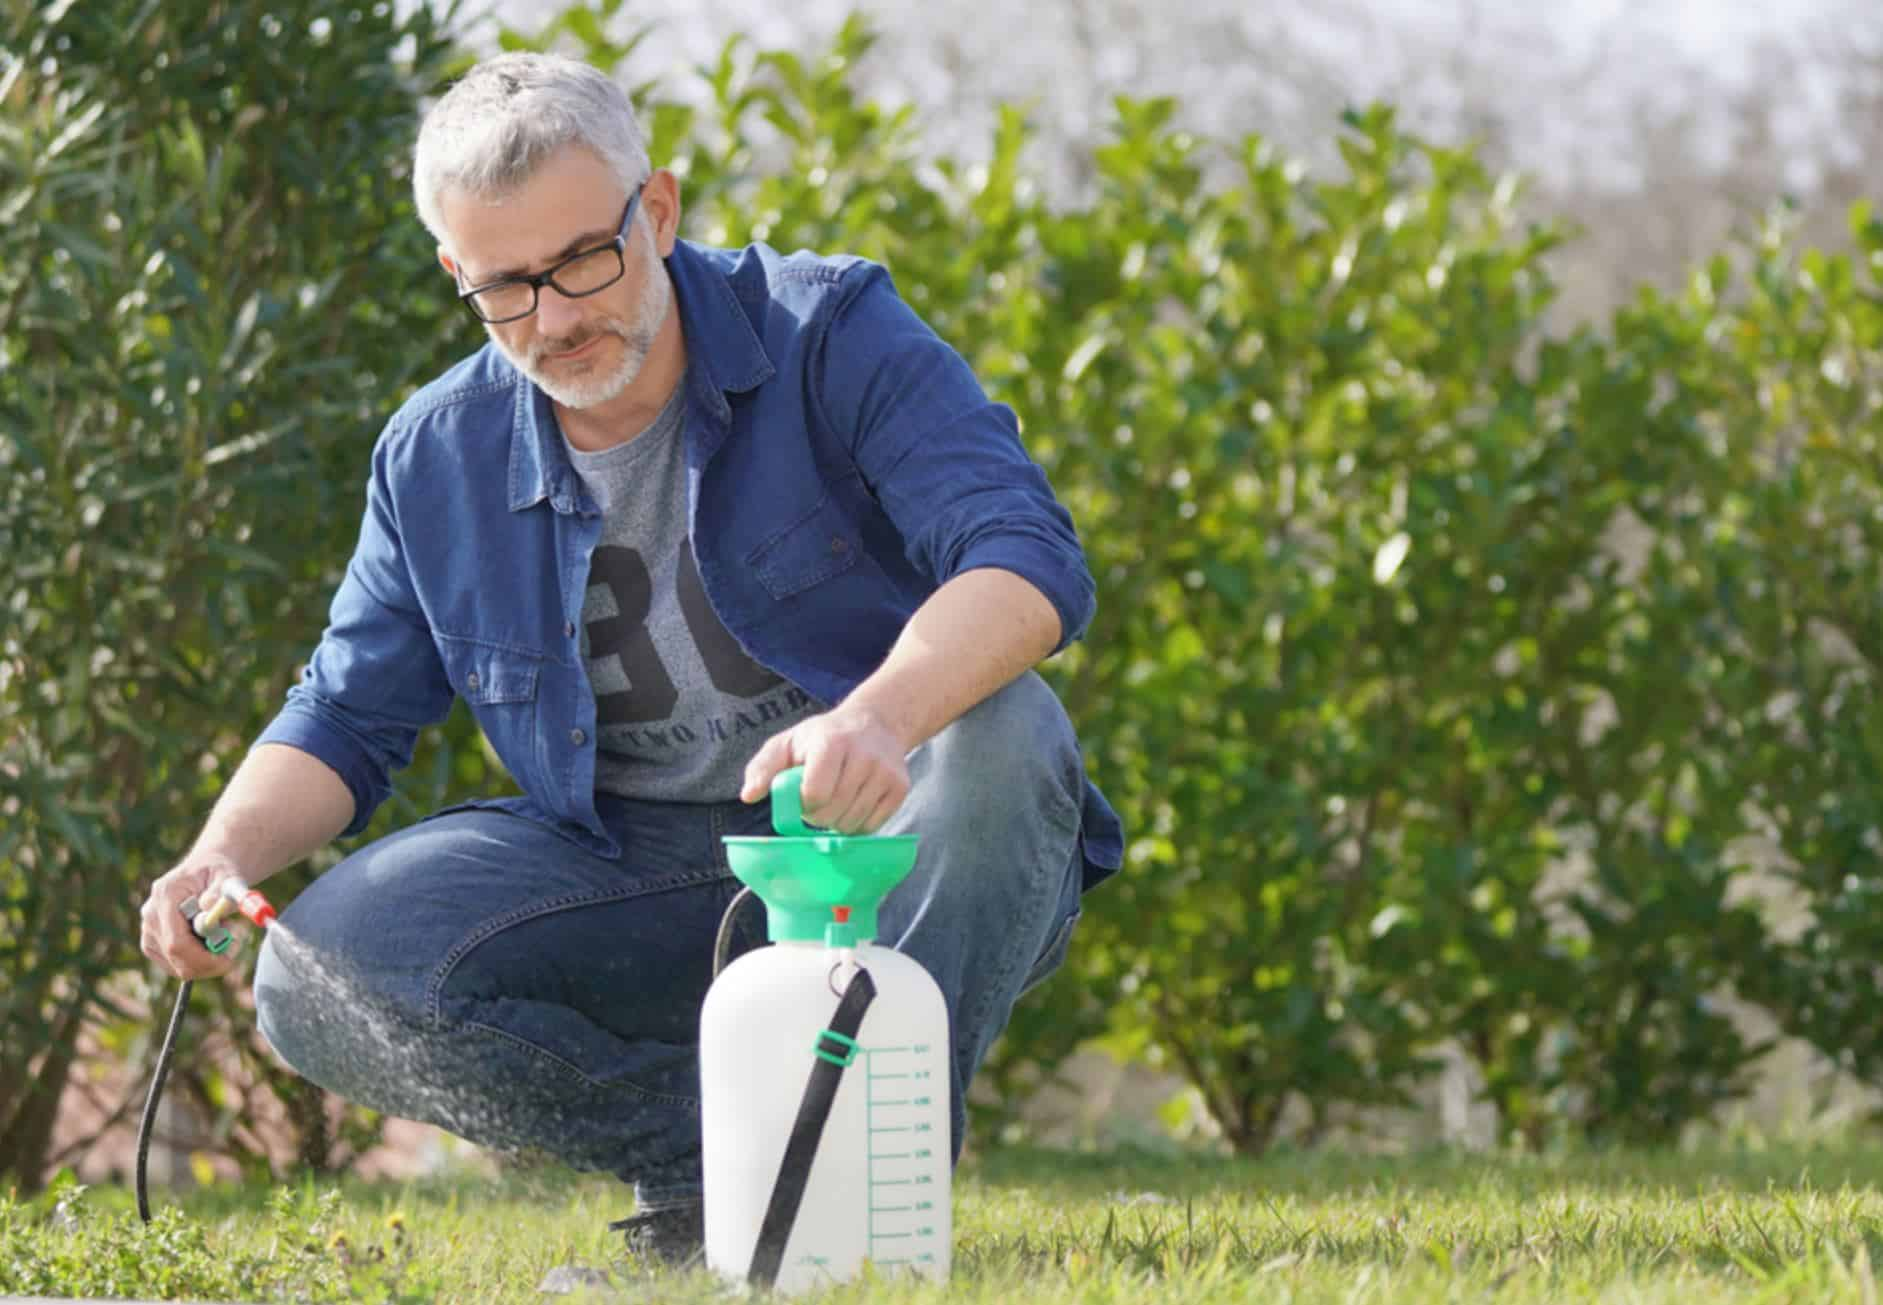 How to Use Post-Emergent Herbicides Safely 1